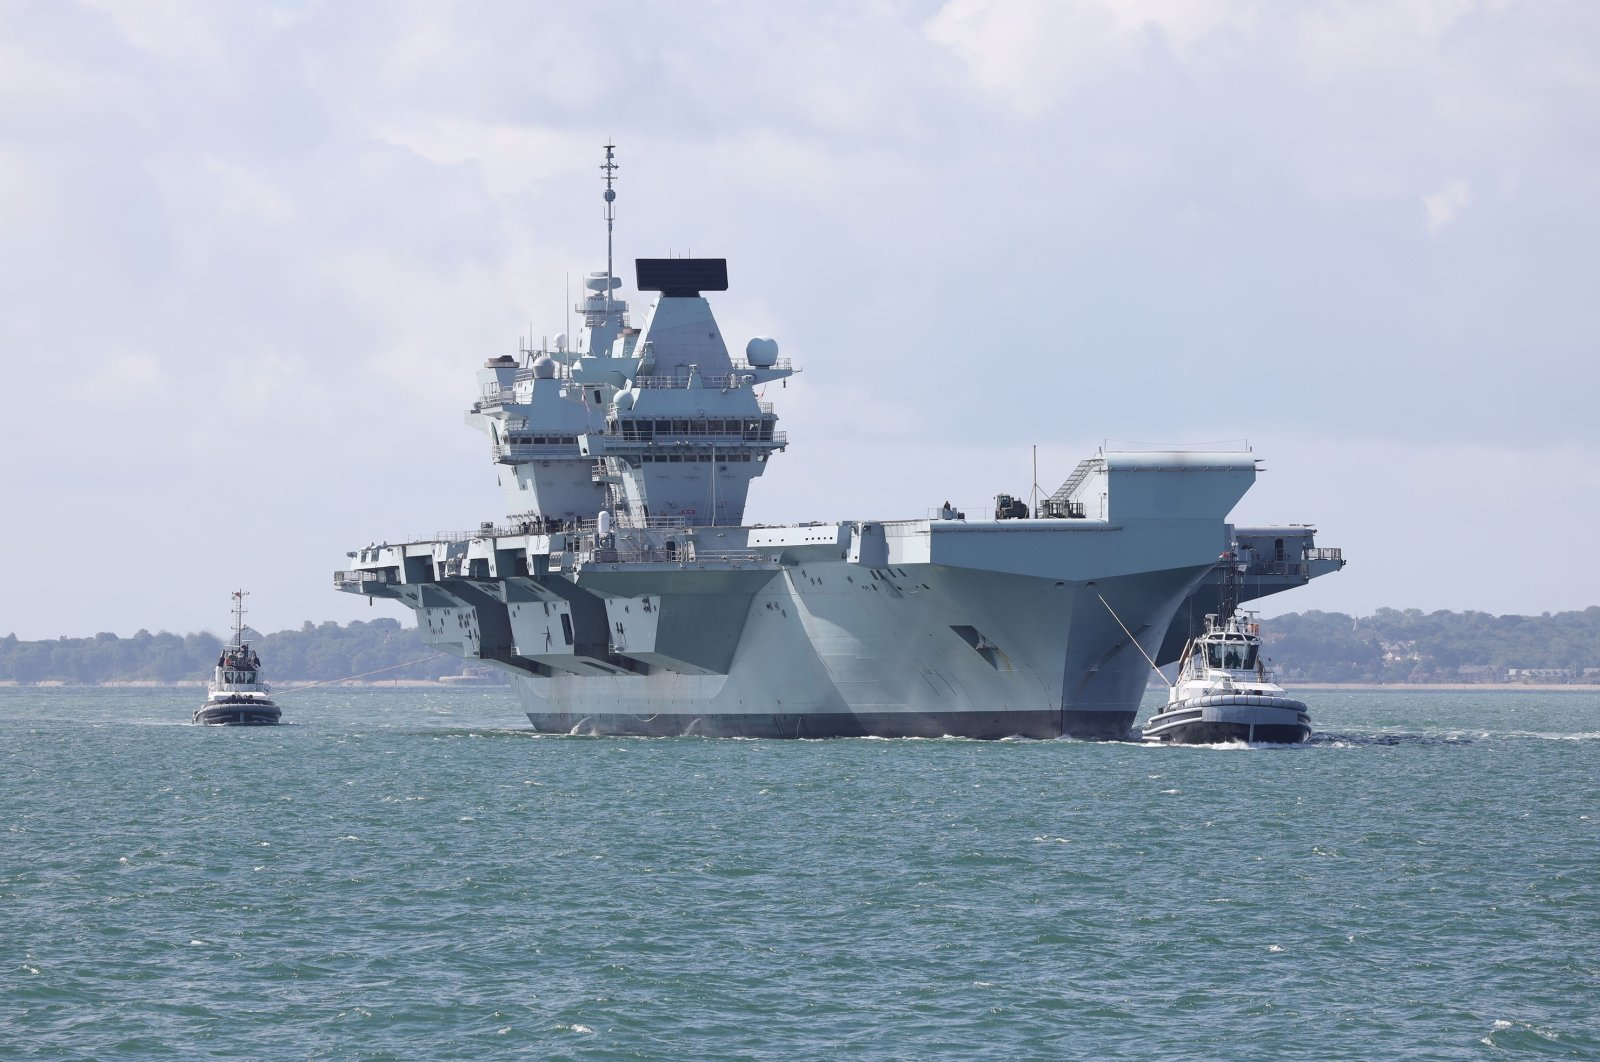 The aircraft carrier HMS Queen Elizabeth returns to its home port after the completion of Exercise Crimson Ocean, Portsmouth, Britain, July 2, 2020. (Shutterstock Photo)